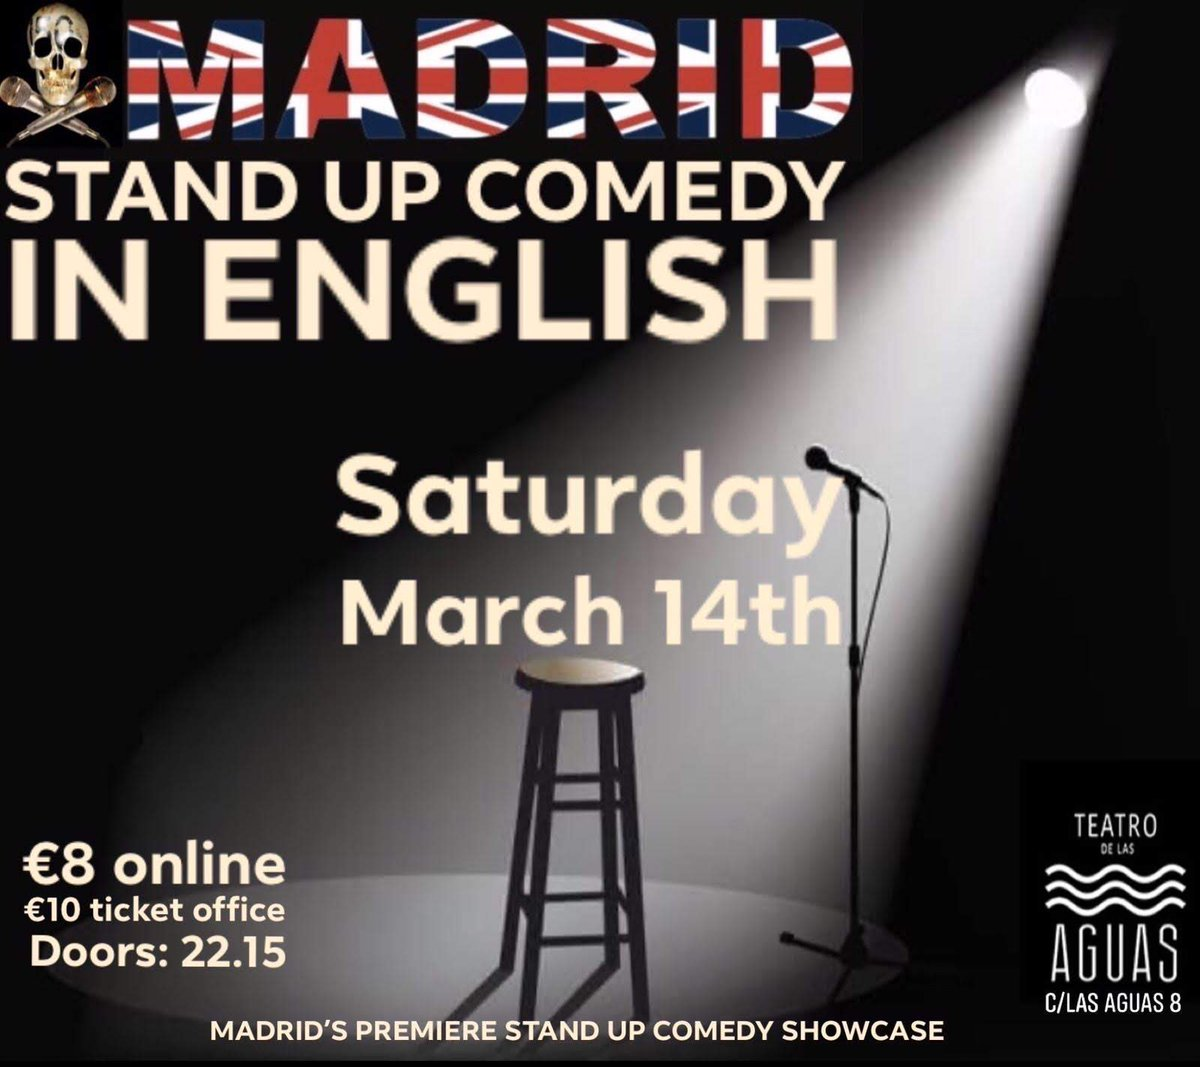 Stand Up Comedy in English  https://ti.to/madrid-stand-up-comedy/Mar14…pic.twitter.com/CX44IvtKCl